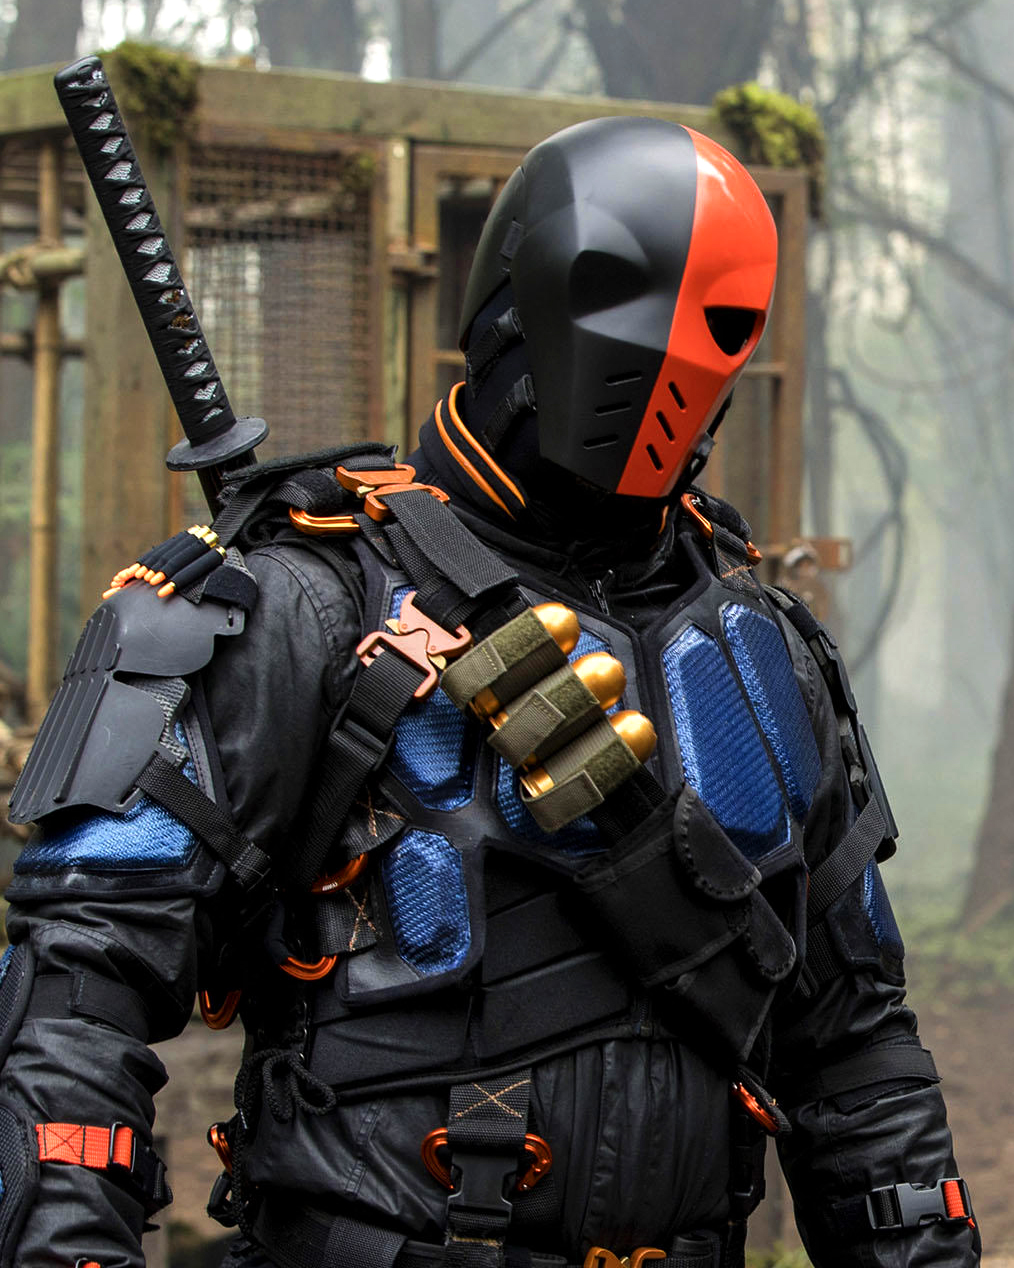 Deathstroke Helmet - Costume by Aaron Harrison